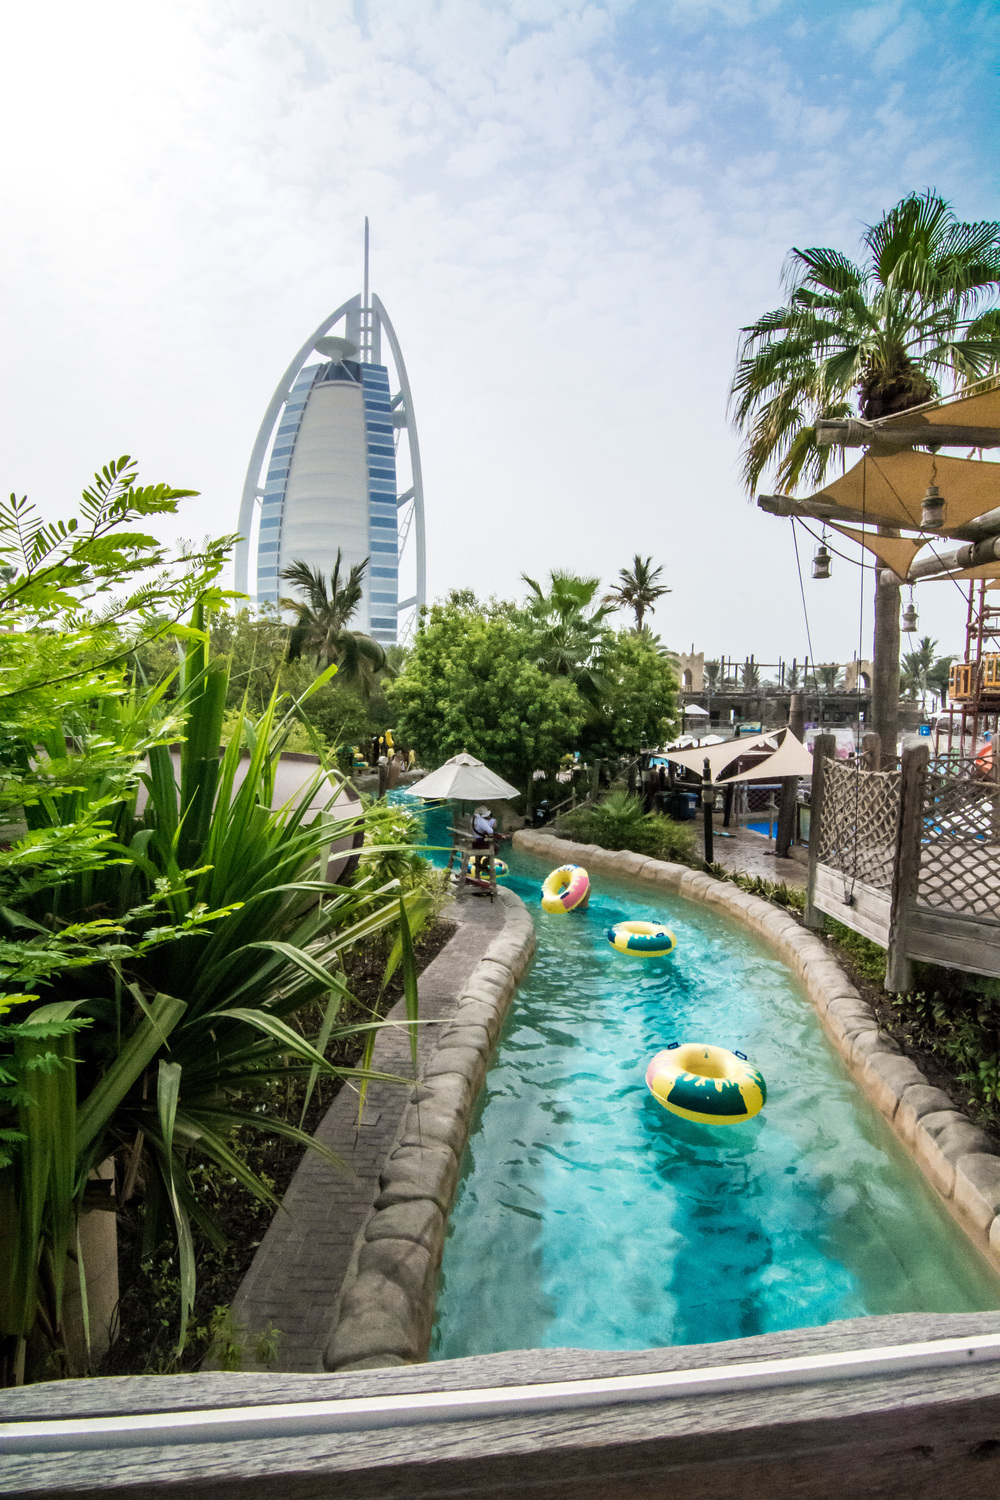 Burj Al Arab and the lazy river.